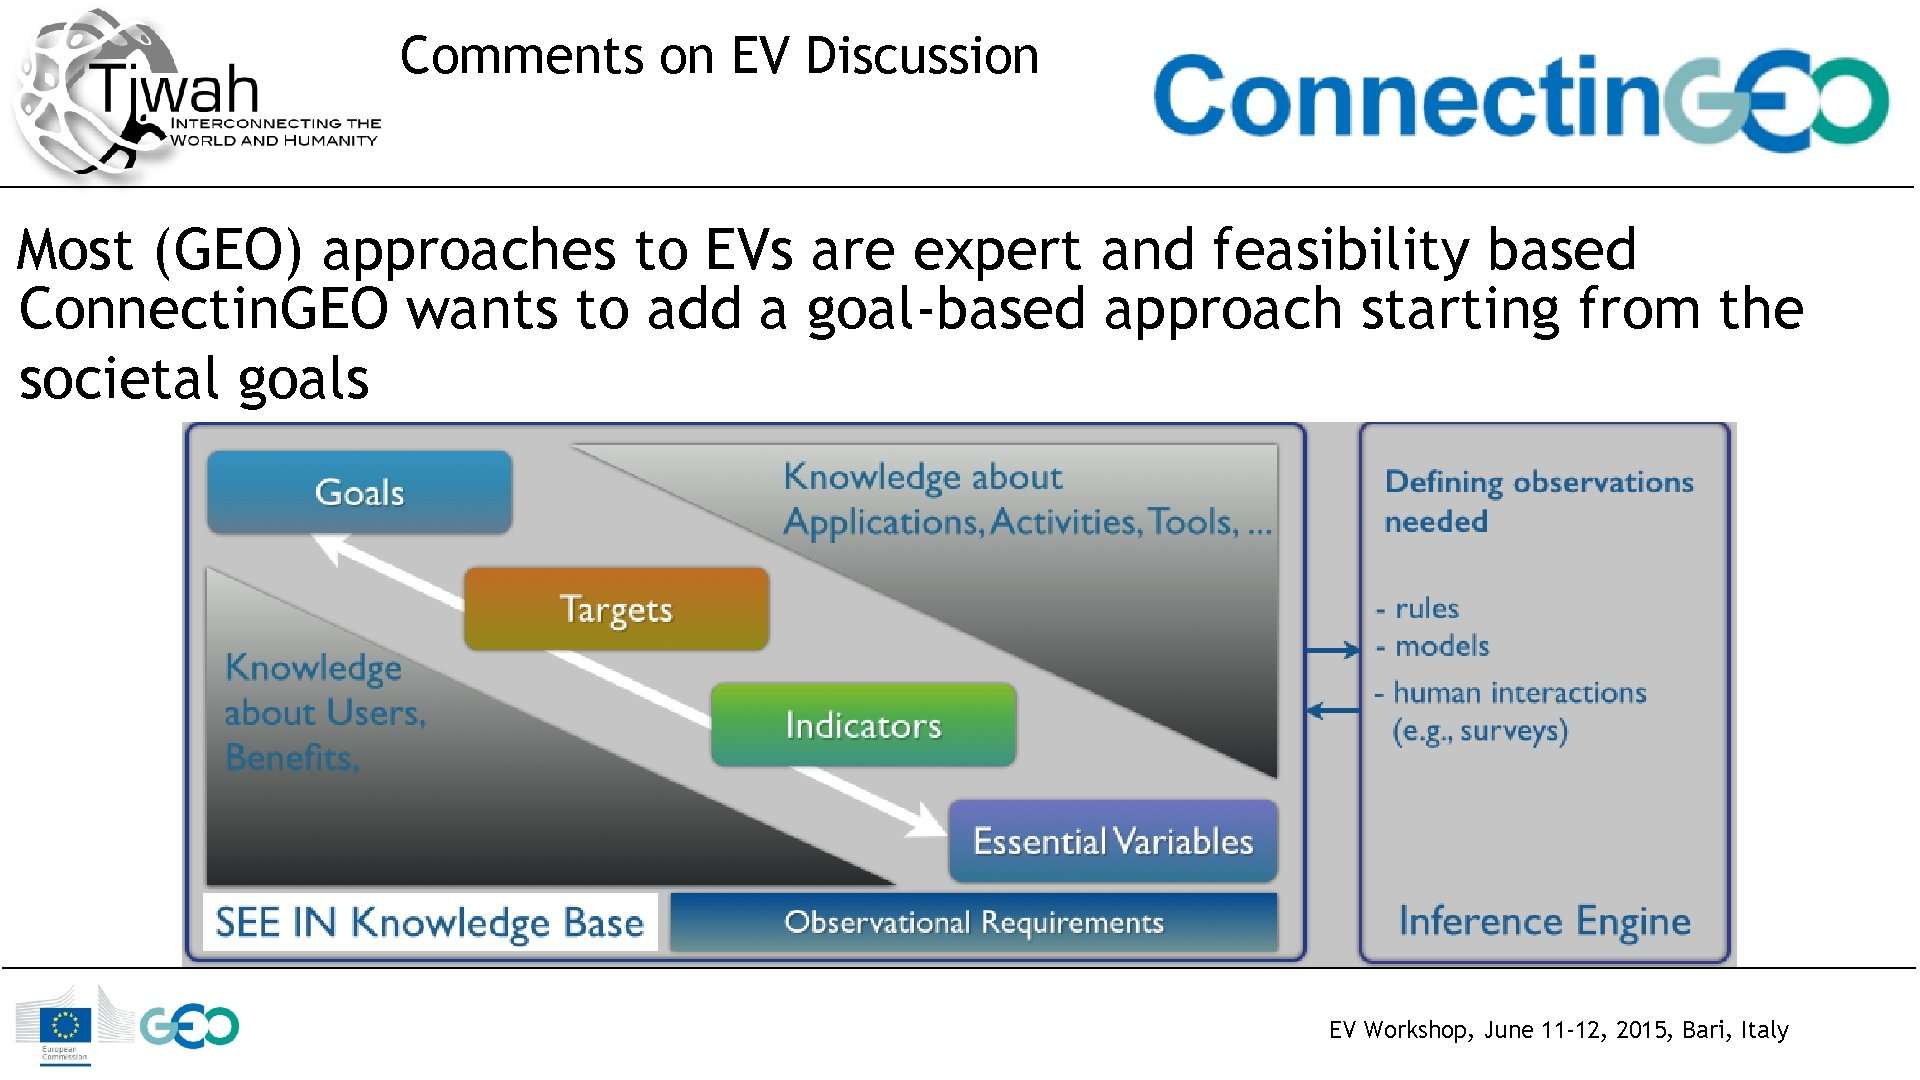 Comments on EV Discussion Most (GEO) approaches to EVs are expert and feasibility based